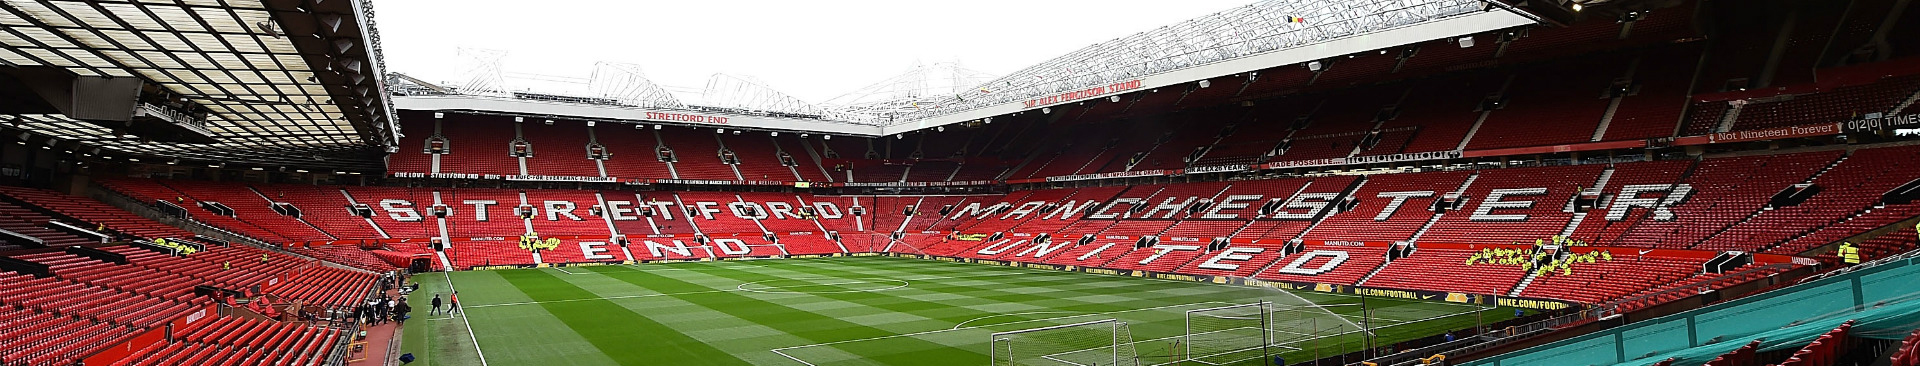 Manchester United: Plans to expand Old Trafford to 88,000